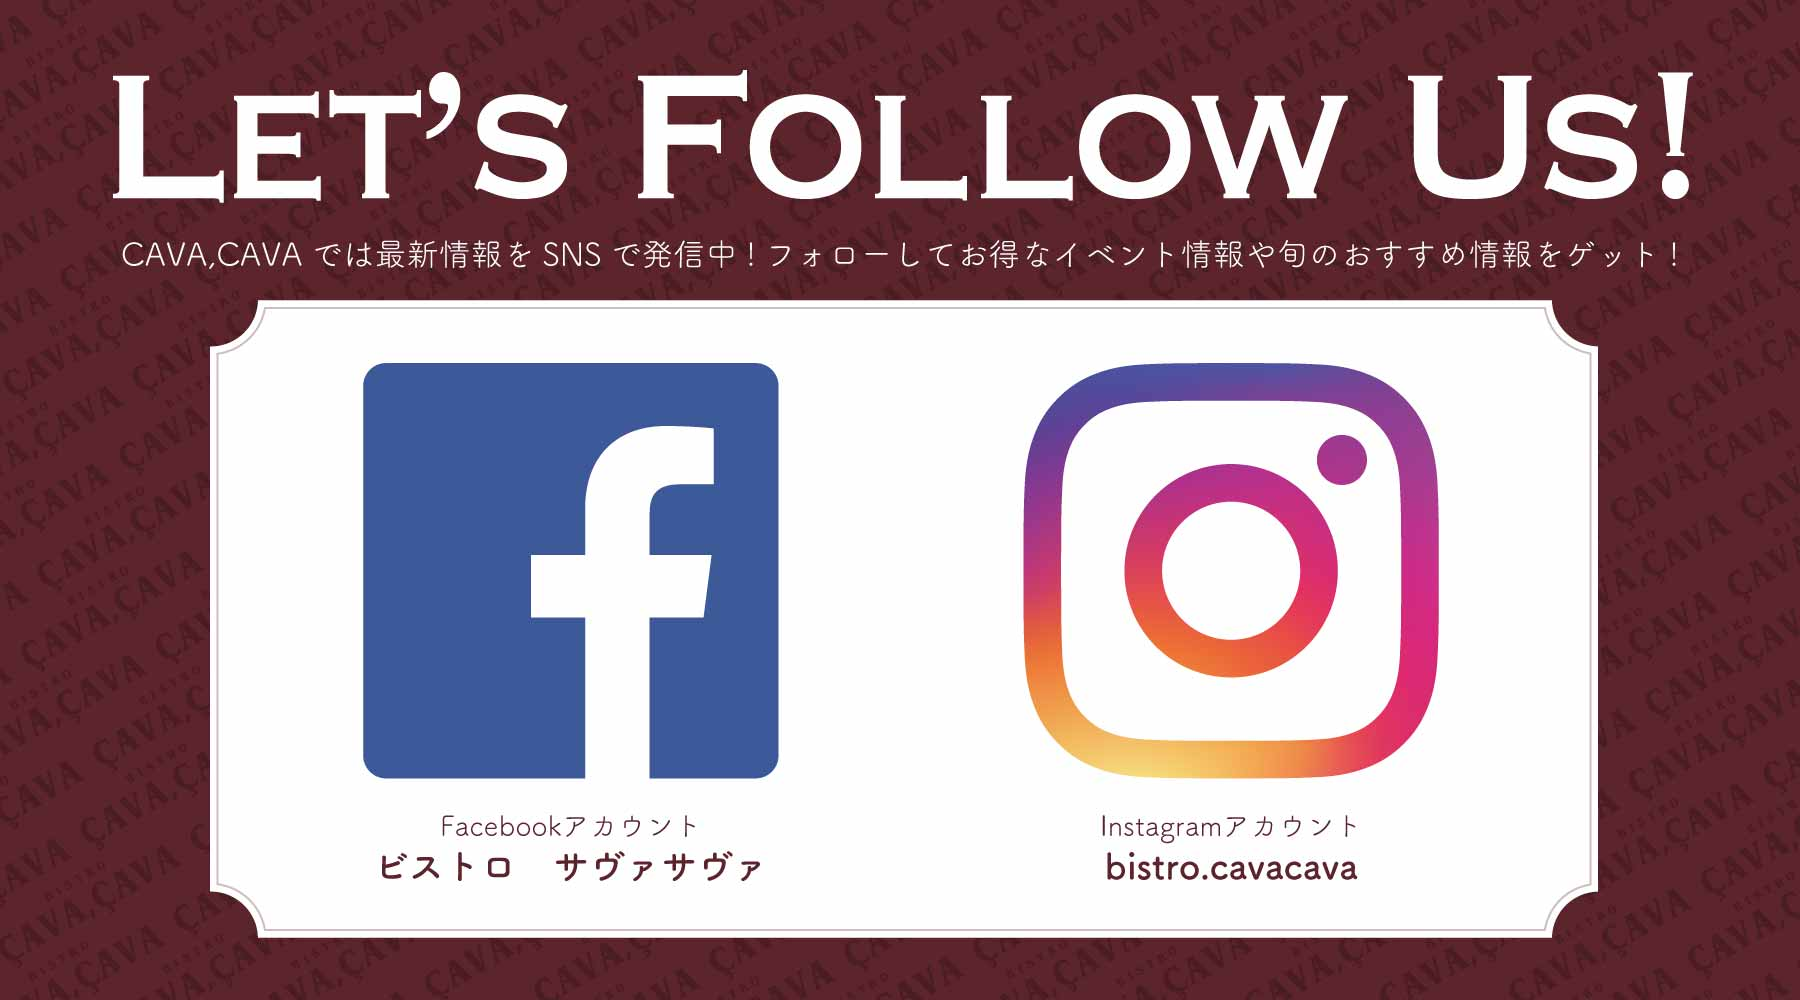 Let's Follow Us!! SNS告知